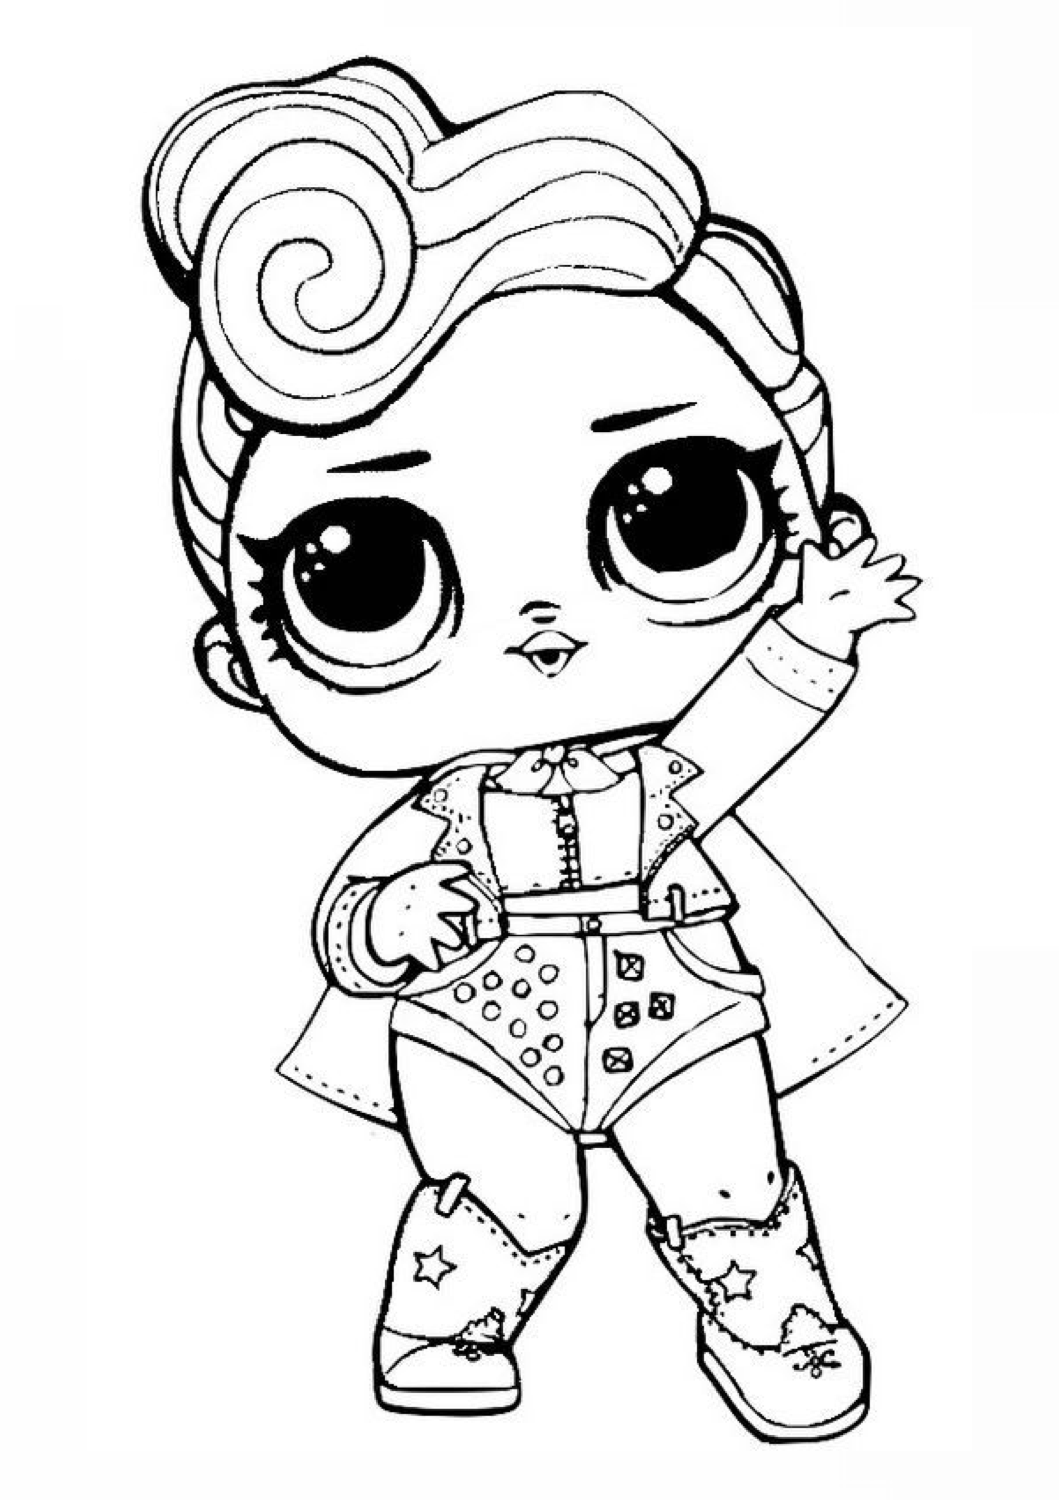 The Queen in 2020 | Coloring pages, Valentine coloring pages, Lol dolls